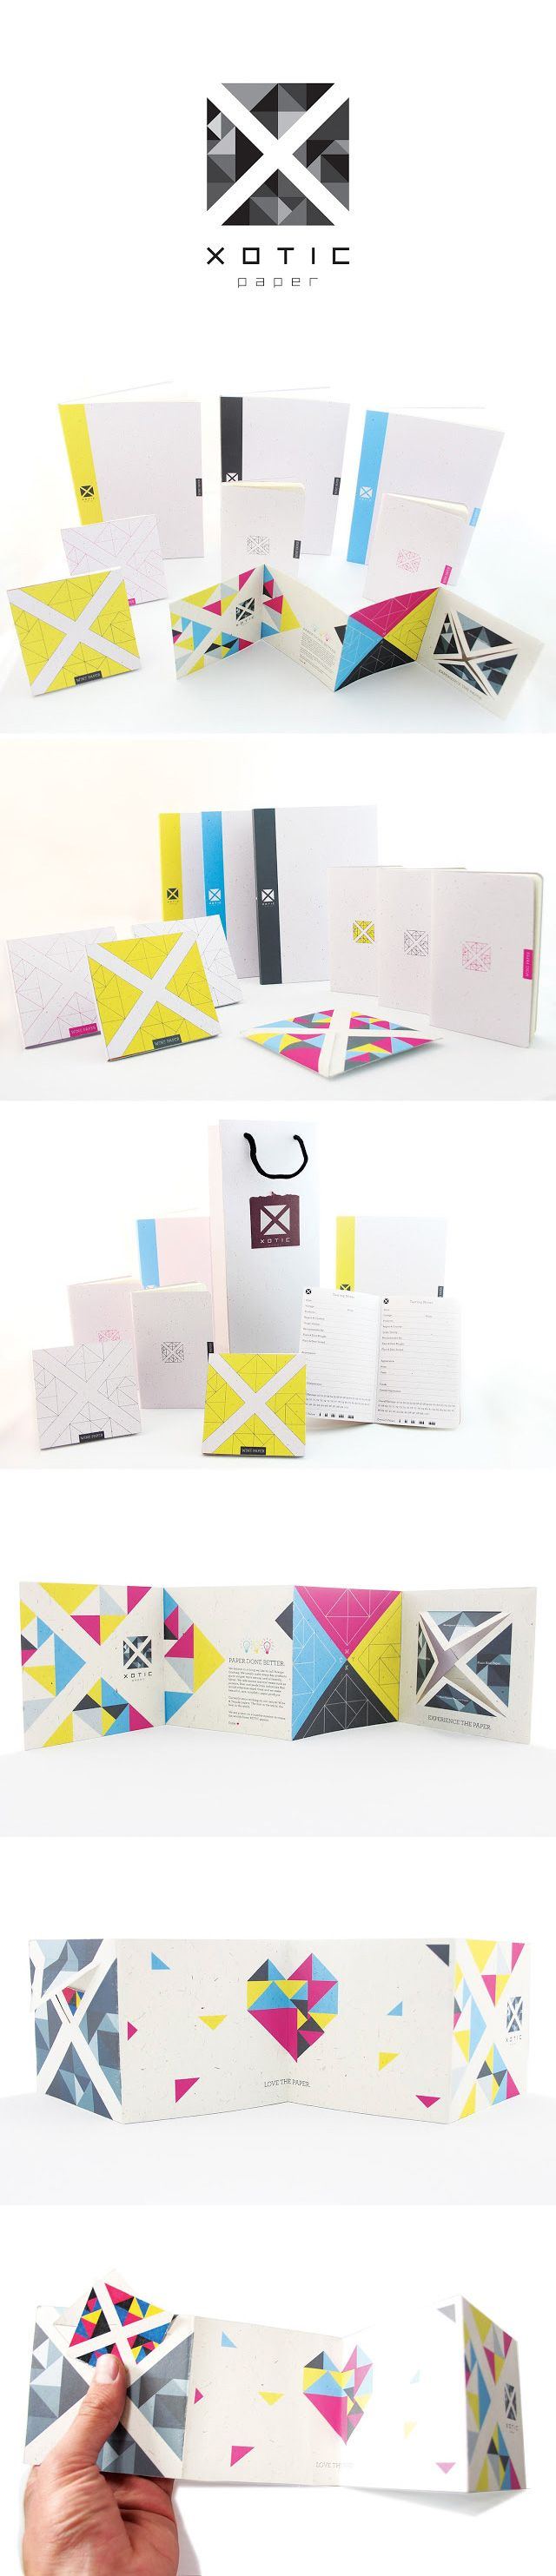 Xotic Paper Packaging by Ratowsky Creative |  Packaging of the World